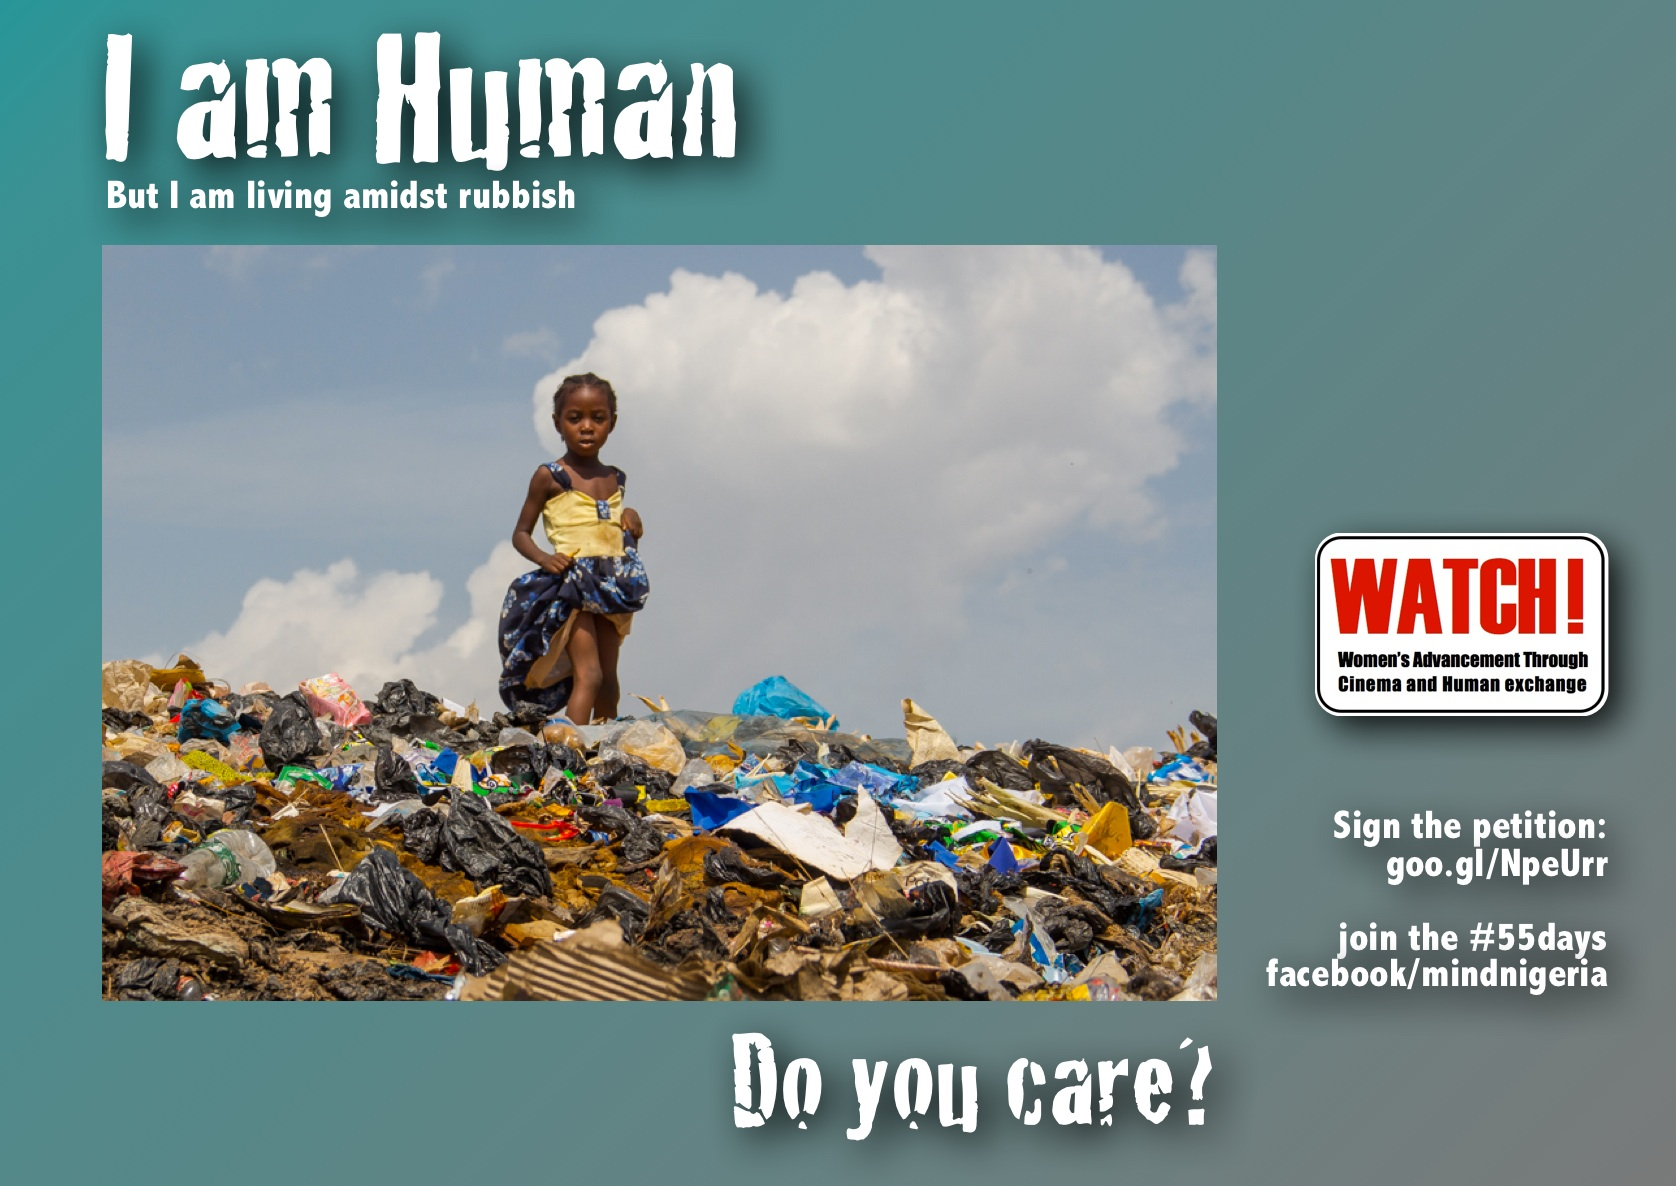 I am human but I am living amidst rubbish